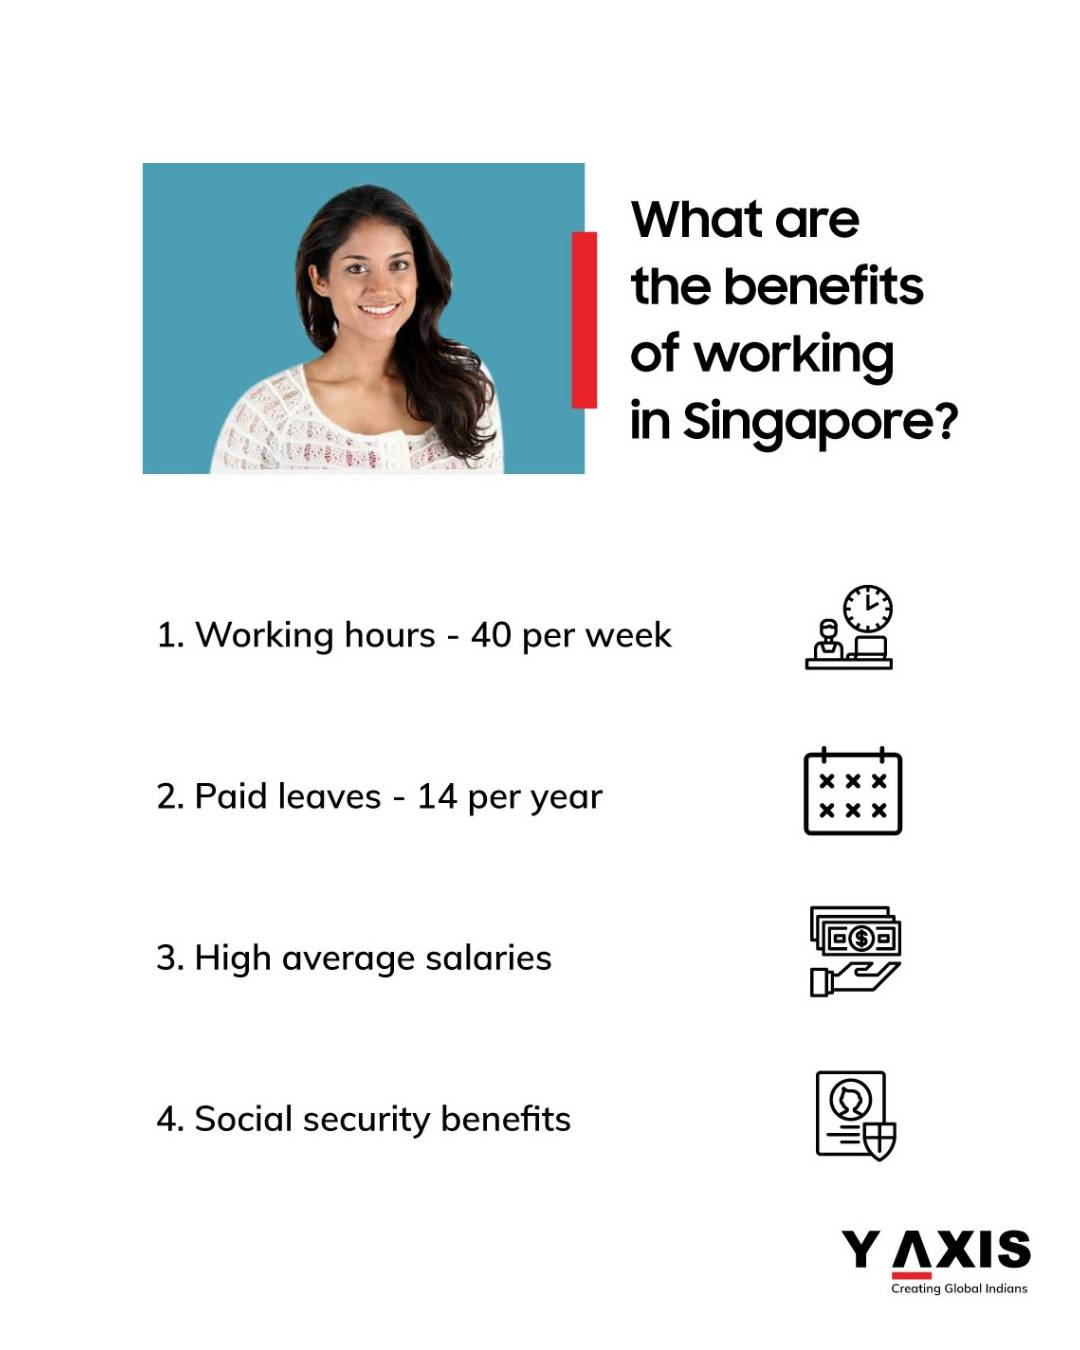 The benefits you will get if you work in Singapore